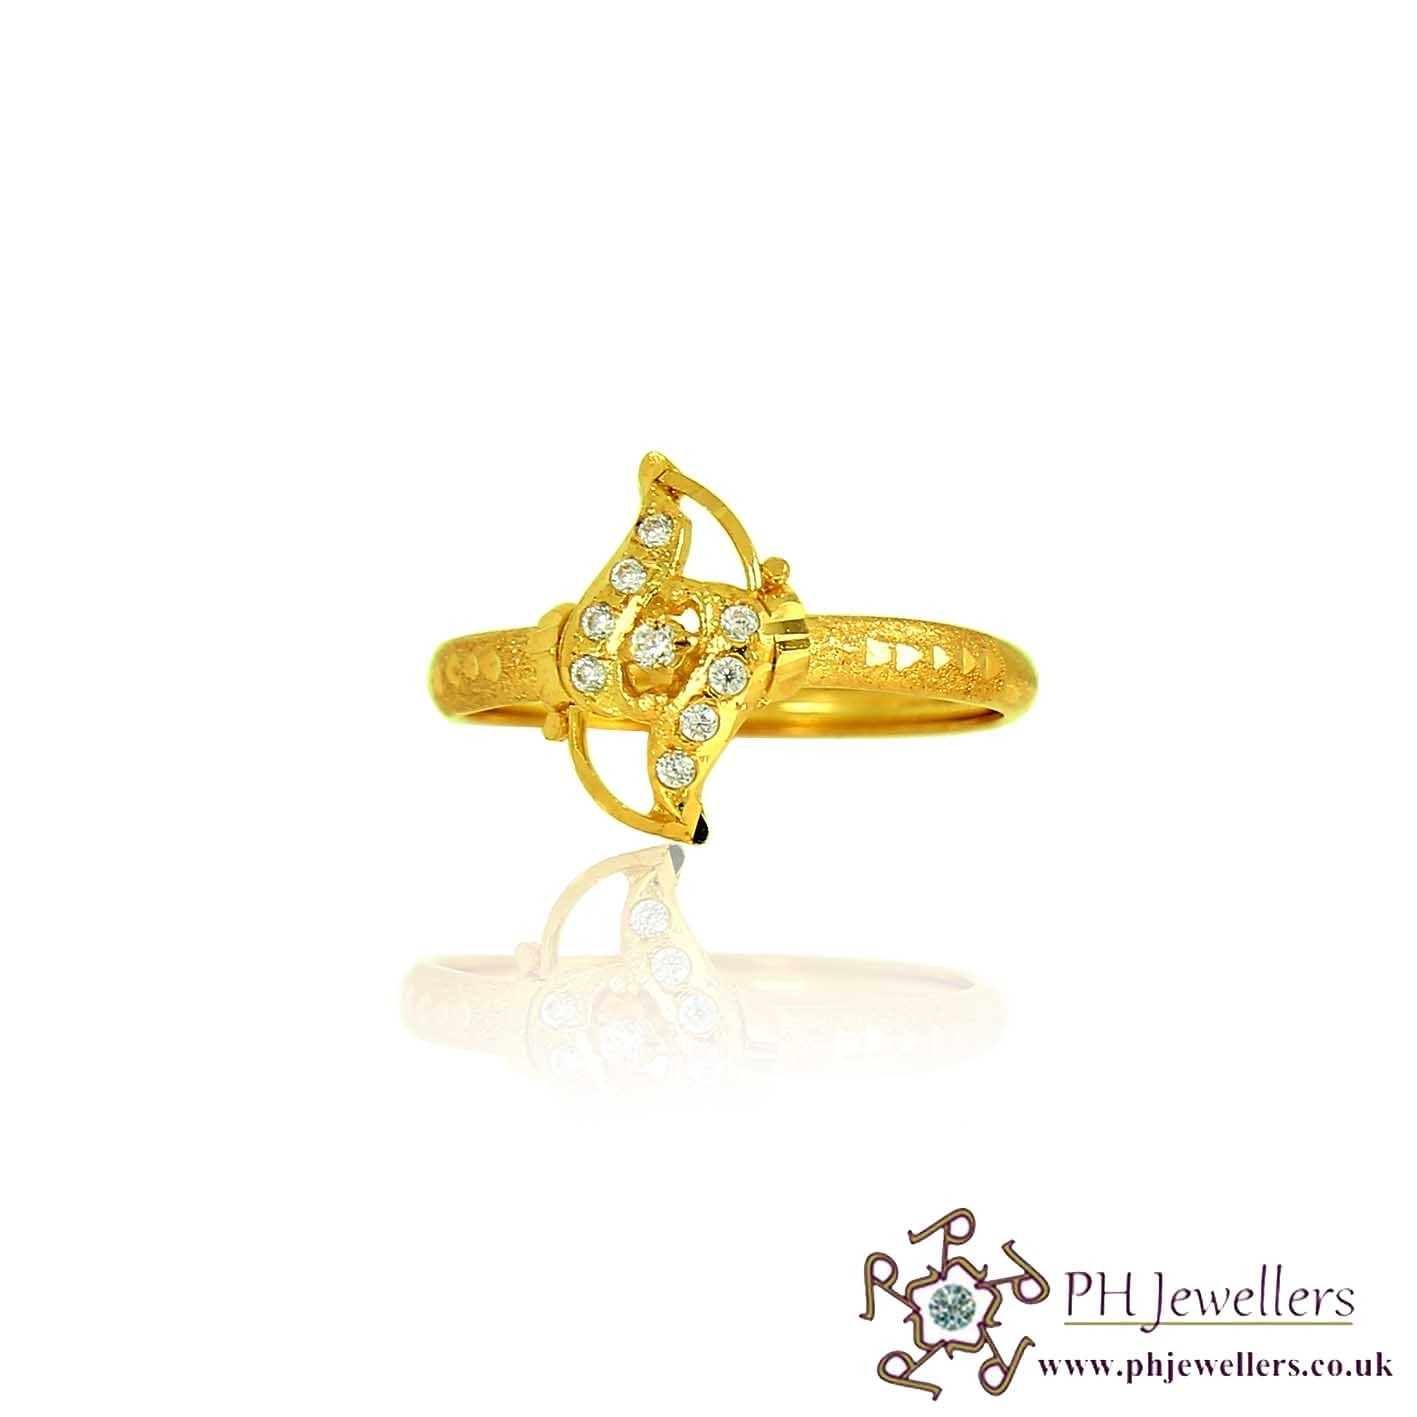 22ct  Yellow Gold Ring with CZ  Stones Size N CZ SR159